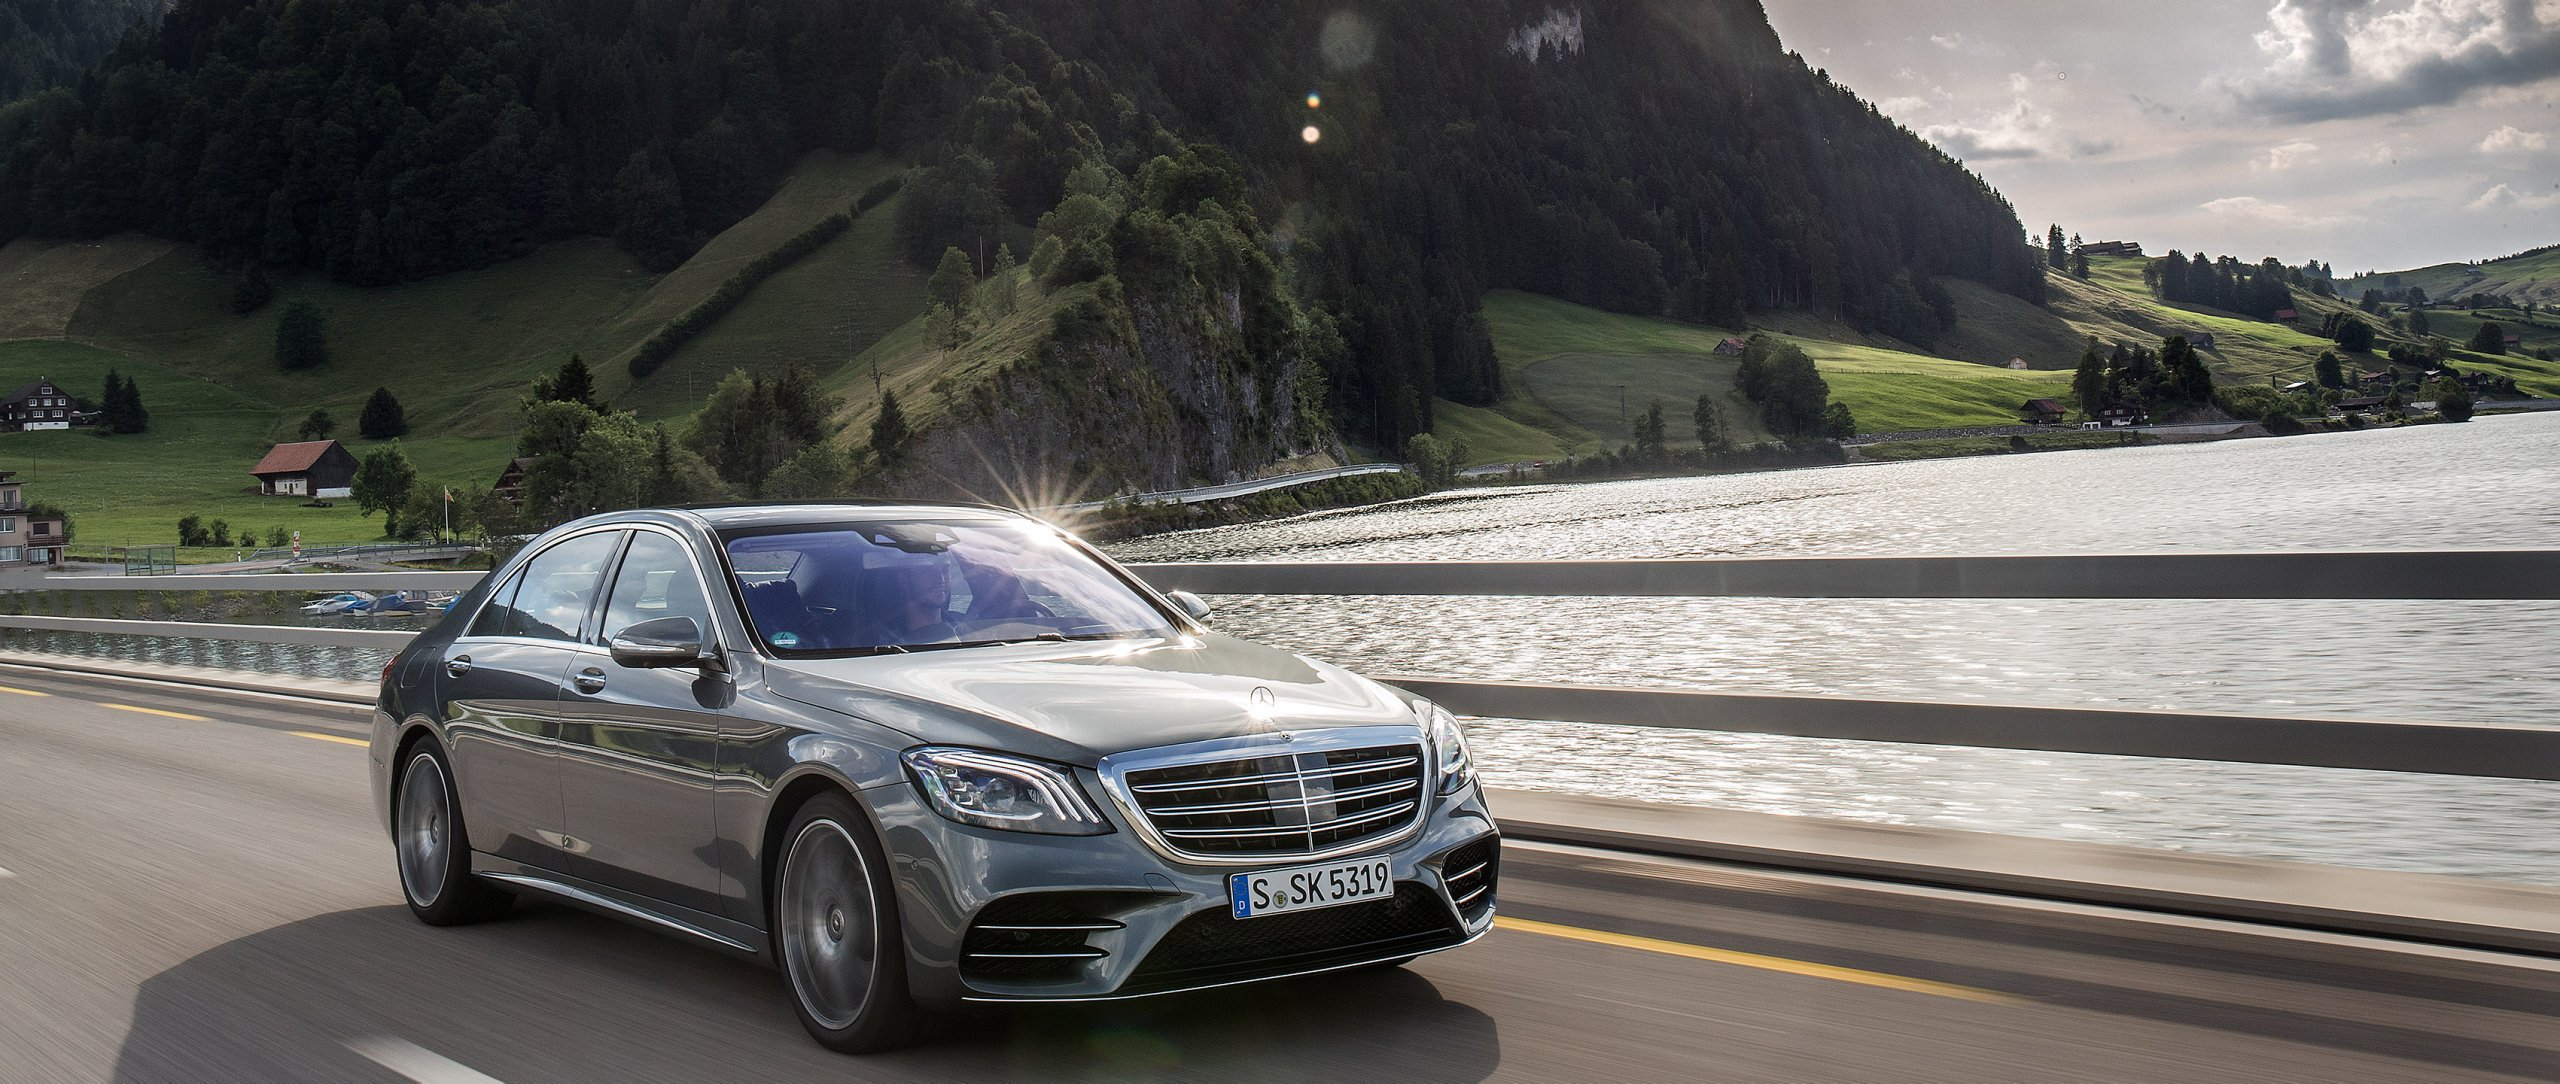 The Mercedes-Benz S-Class (V 222).